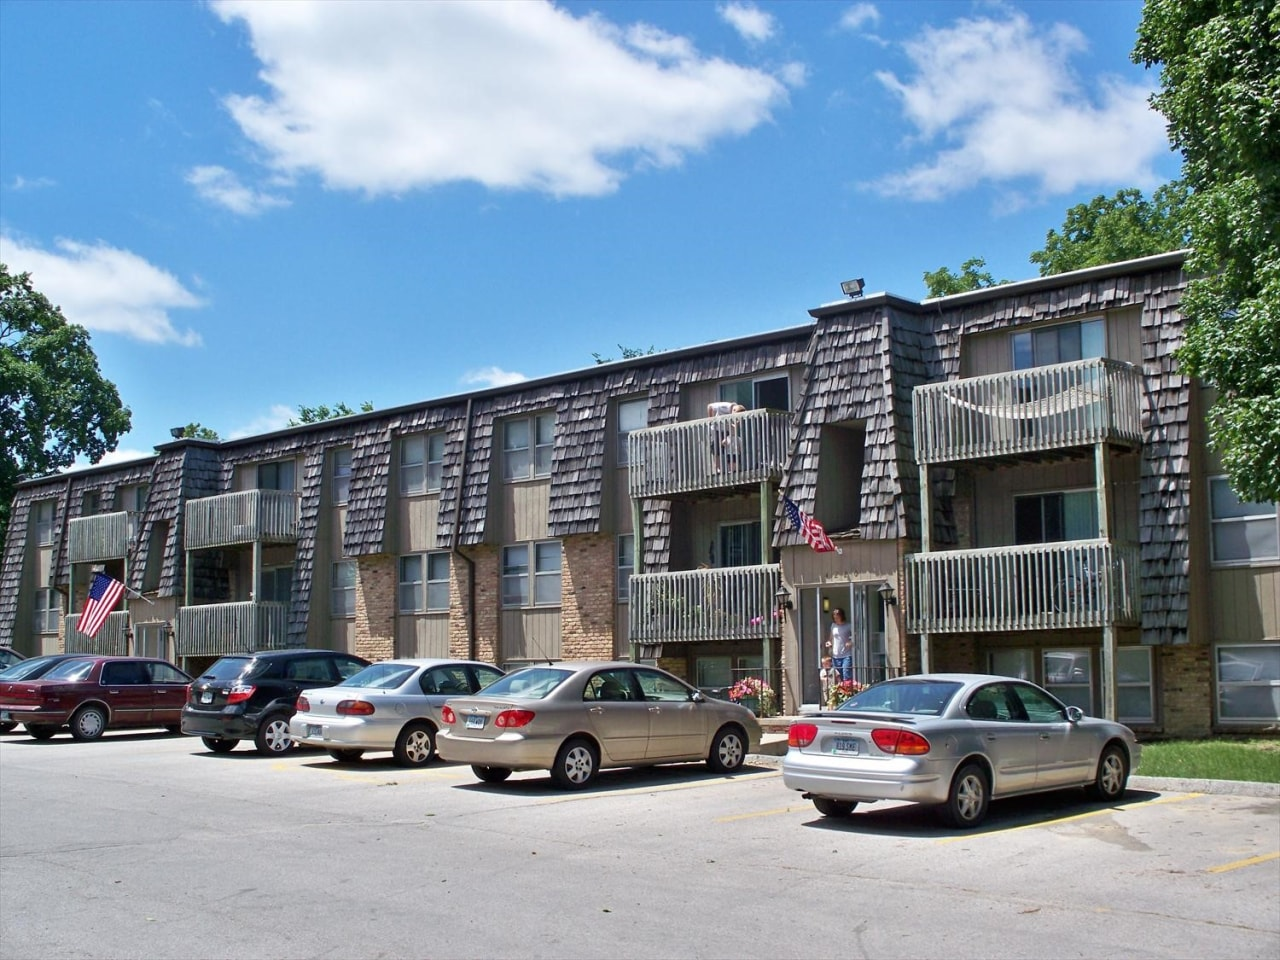 Image of The 4220 Grand Apartments at 4220 Grand Ave Des Moines IA